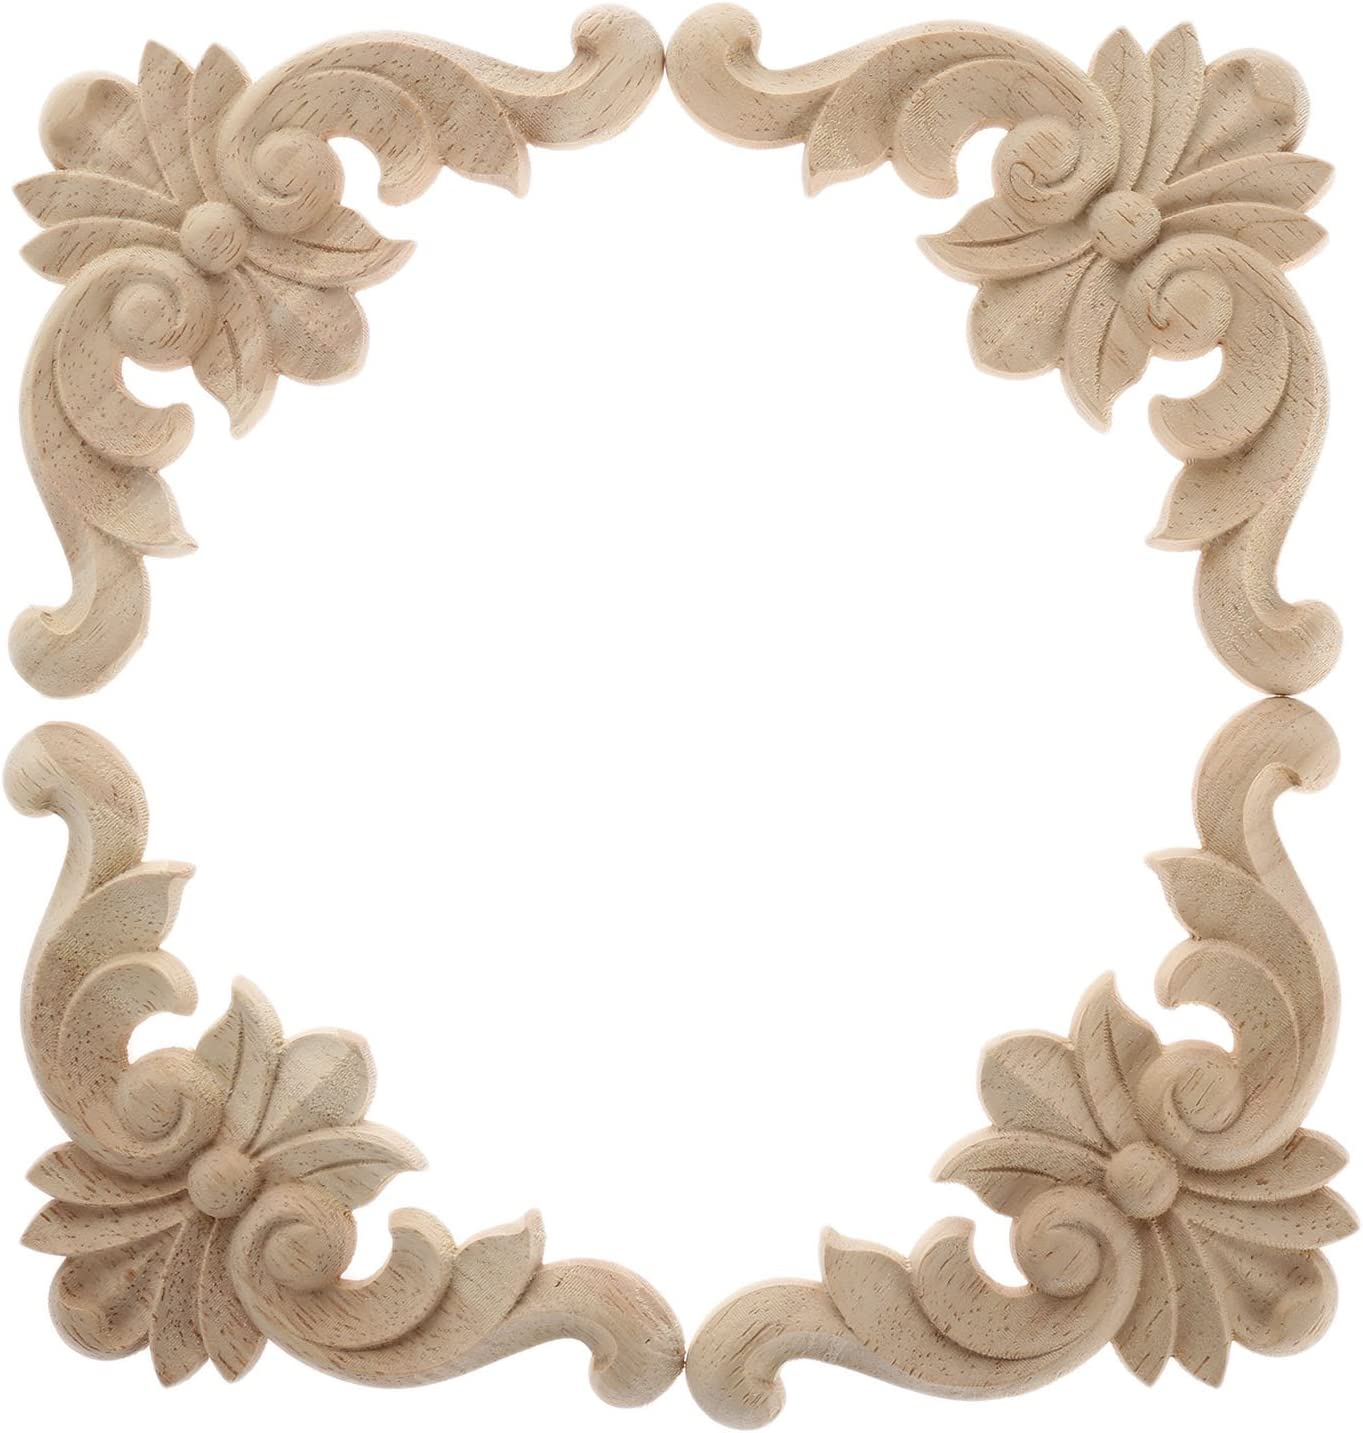 4PCS Wood Applique Rubber Wood Carved Corner Onlay Appliques Furniture Onlay Door Wall Cabinet Frame Decor Flower Shape Unpainted Decoration (6x6cm/2.36